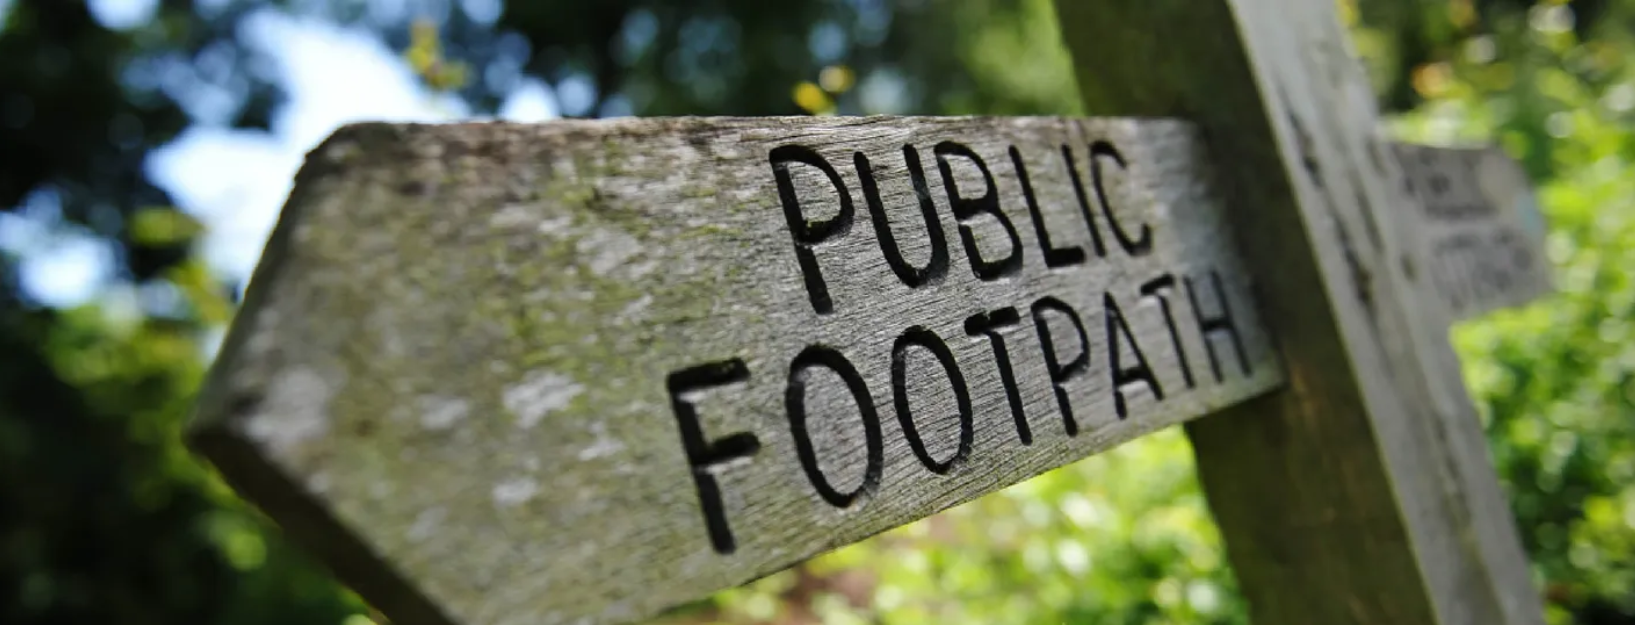 Footpaths and Public Rights of Way